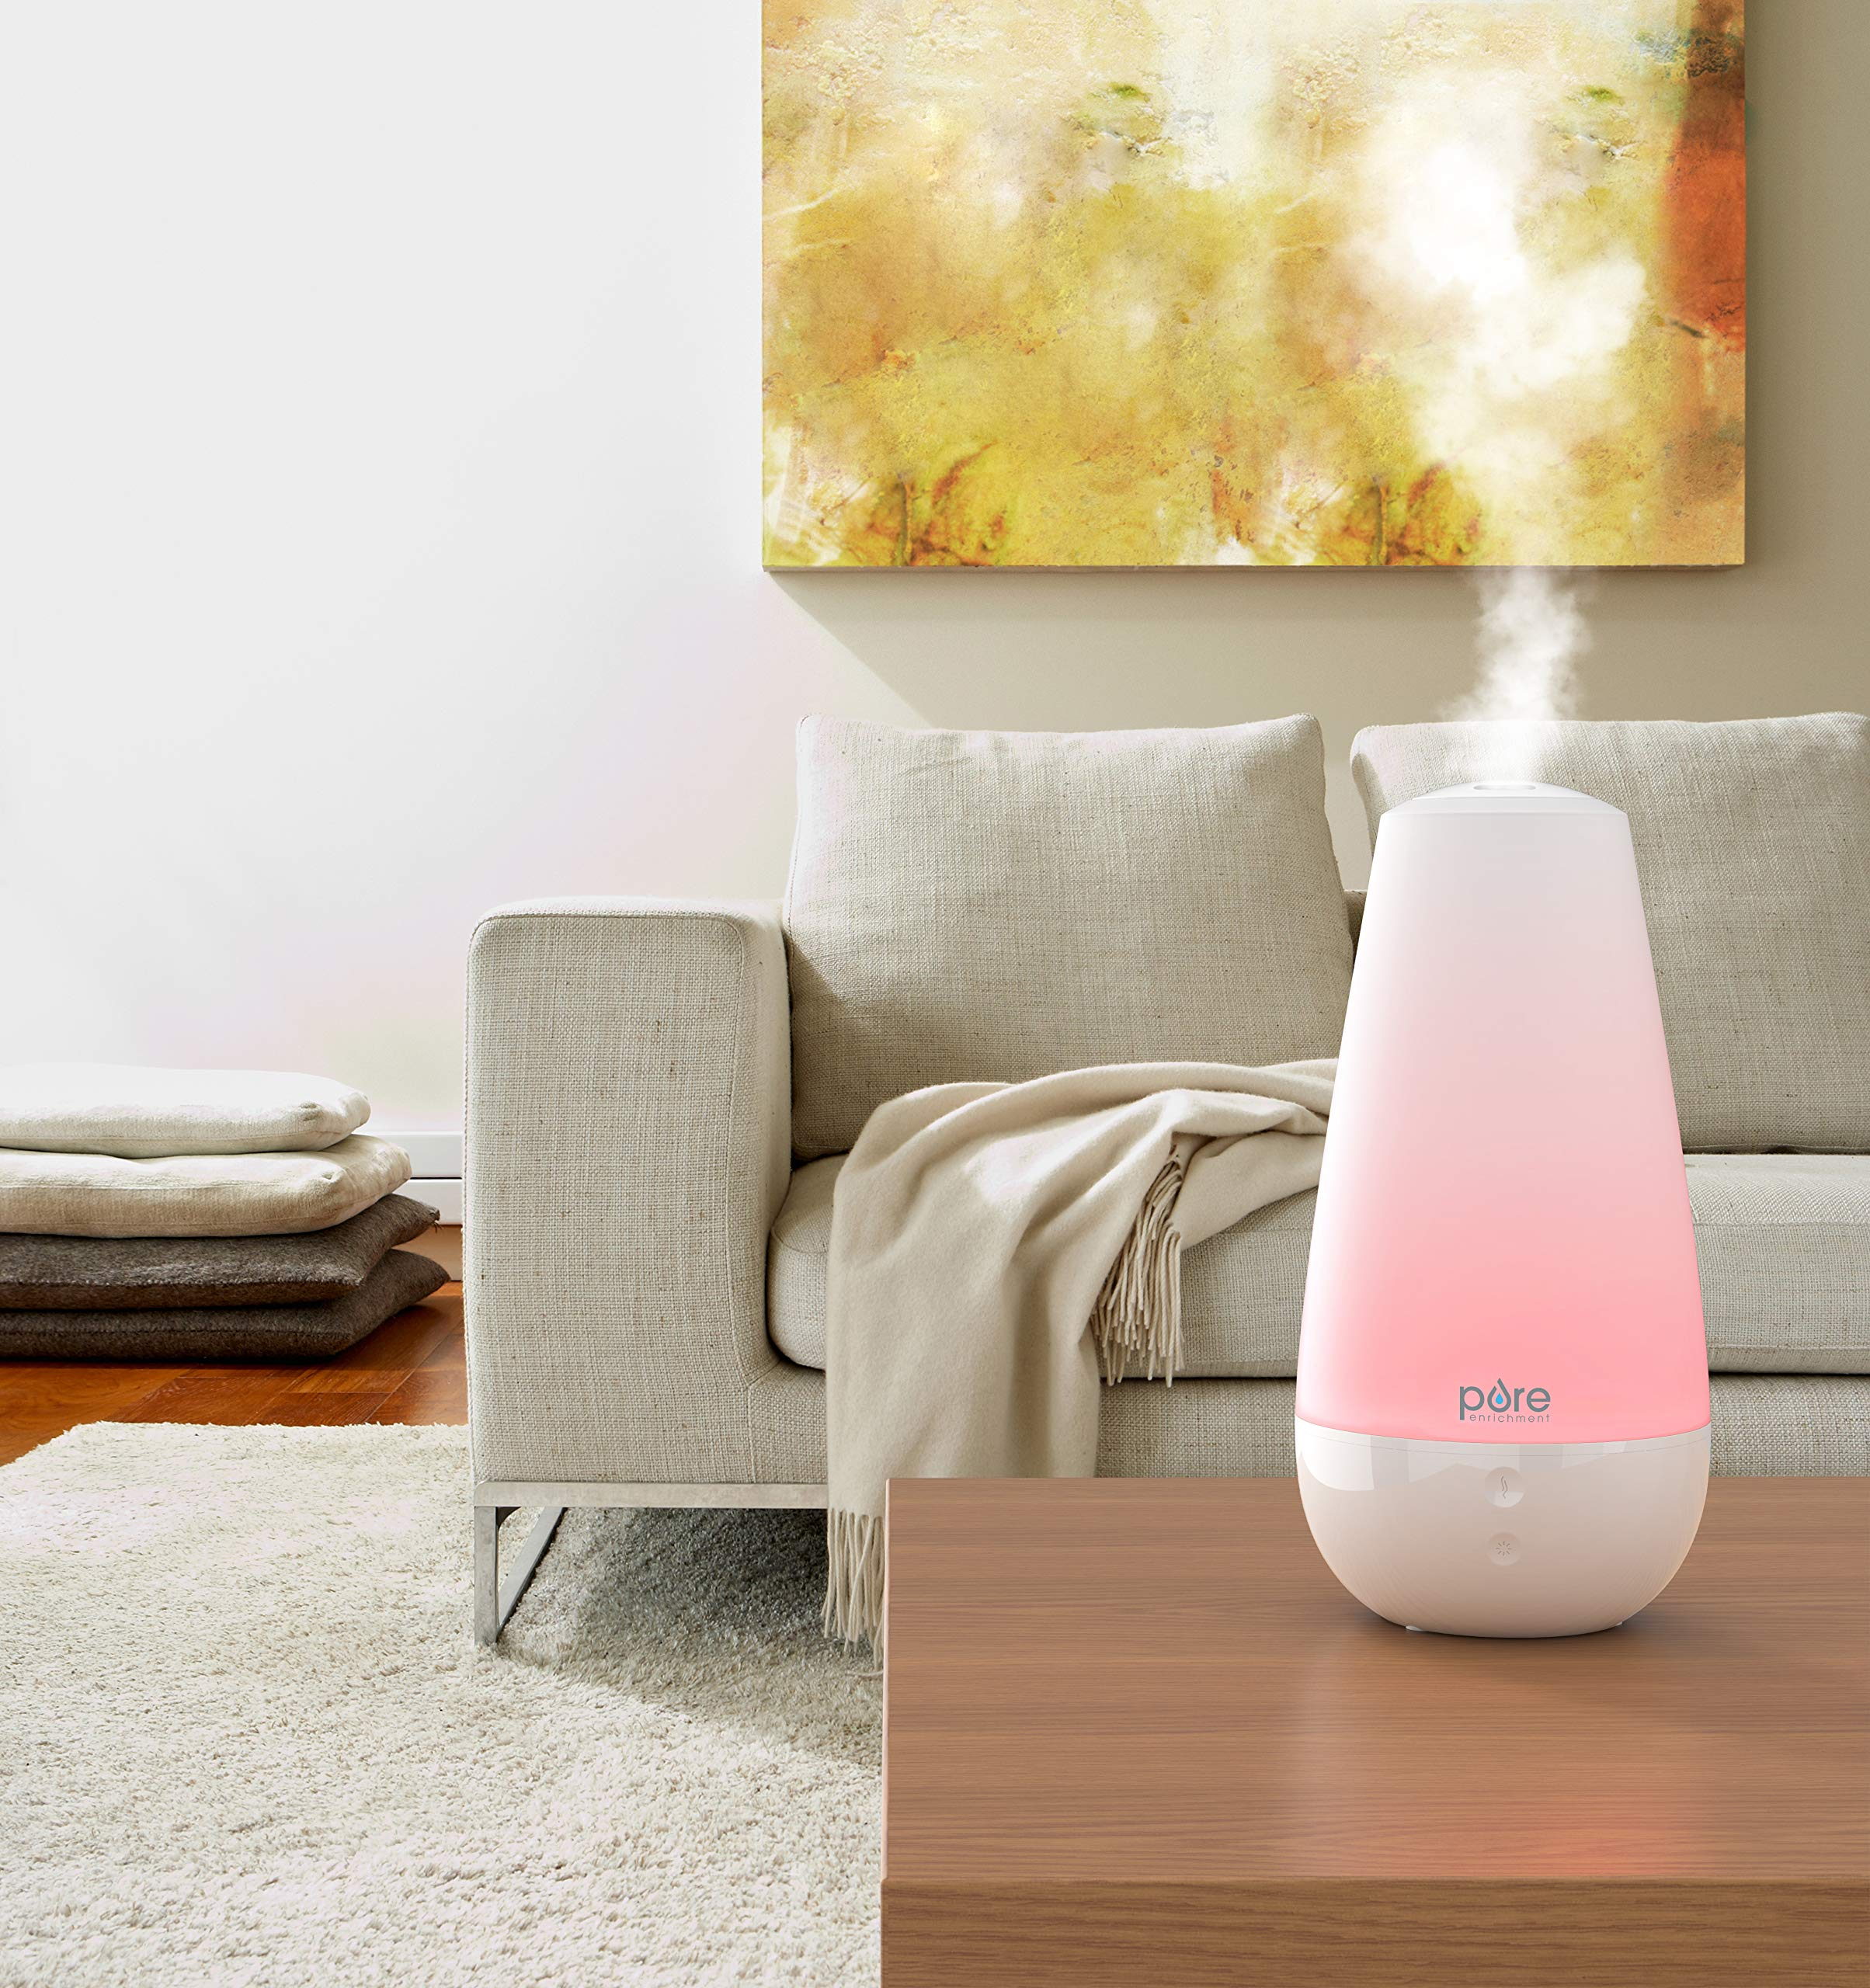 Pure Enrichment PureSpa XL - Extra-Large Premium Aroma Diffuser with 2,000ml Tank - 3-in-1 Unit Also Functions as a Single-Room Humidifier and Intelligent Mood Light by Pure Enrichment (Image #2)